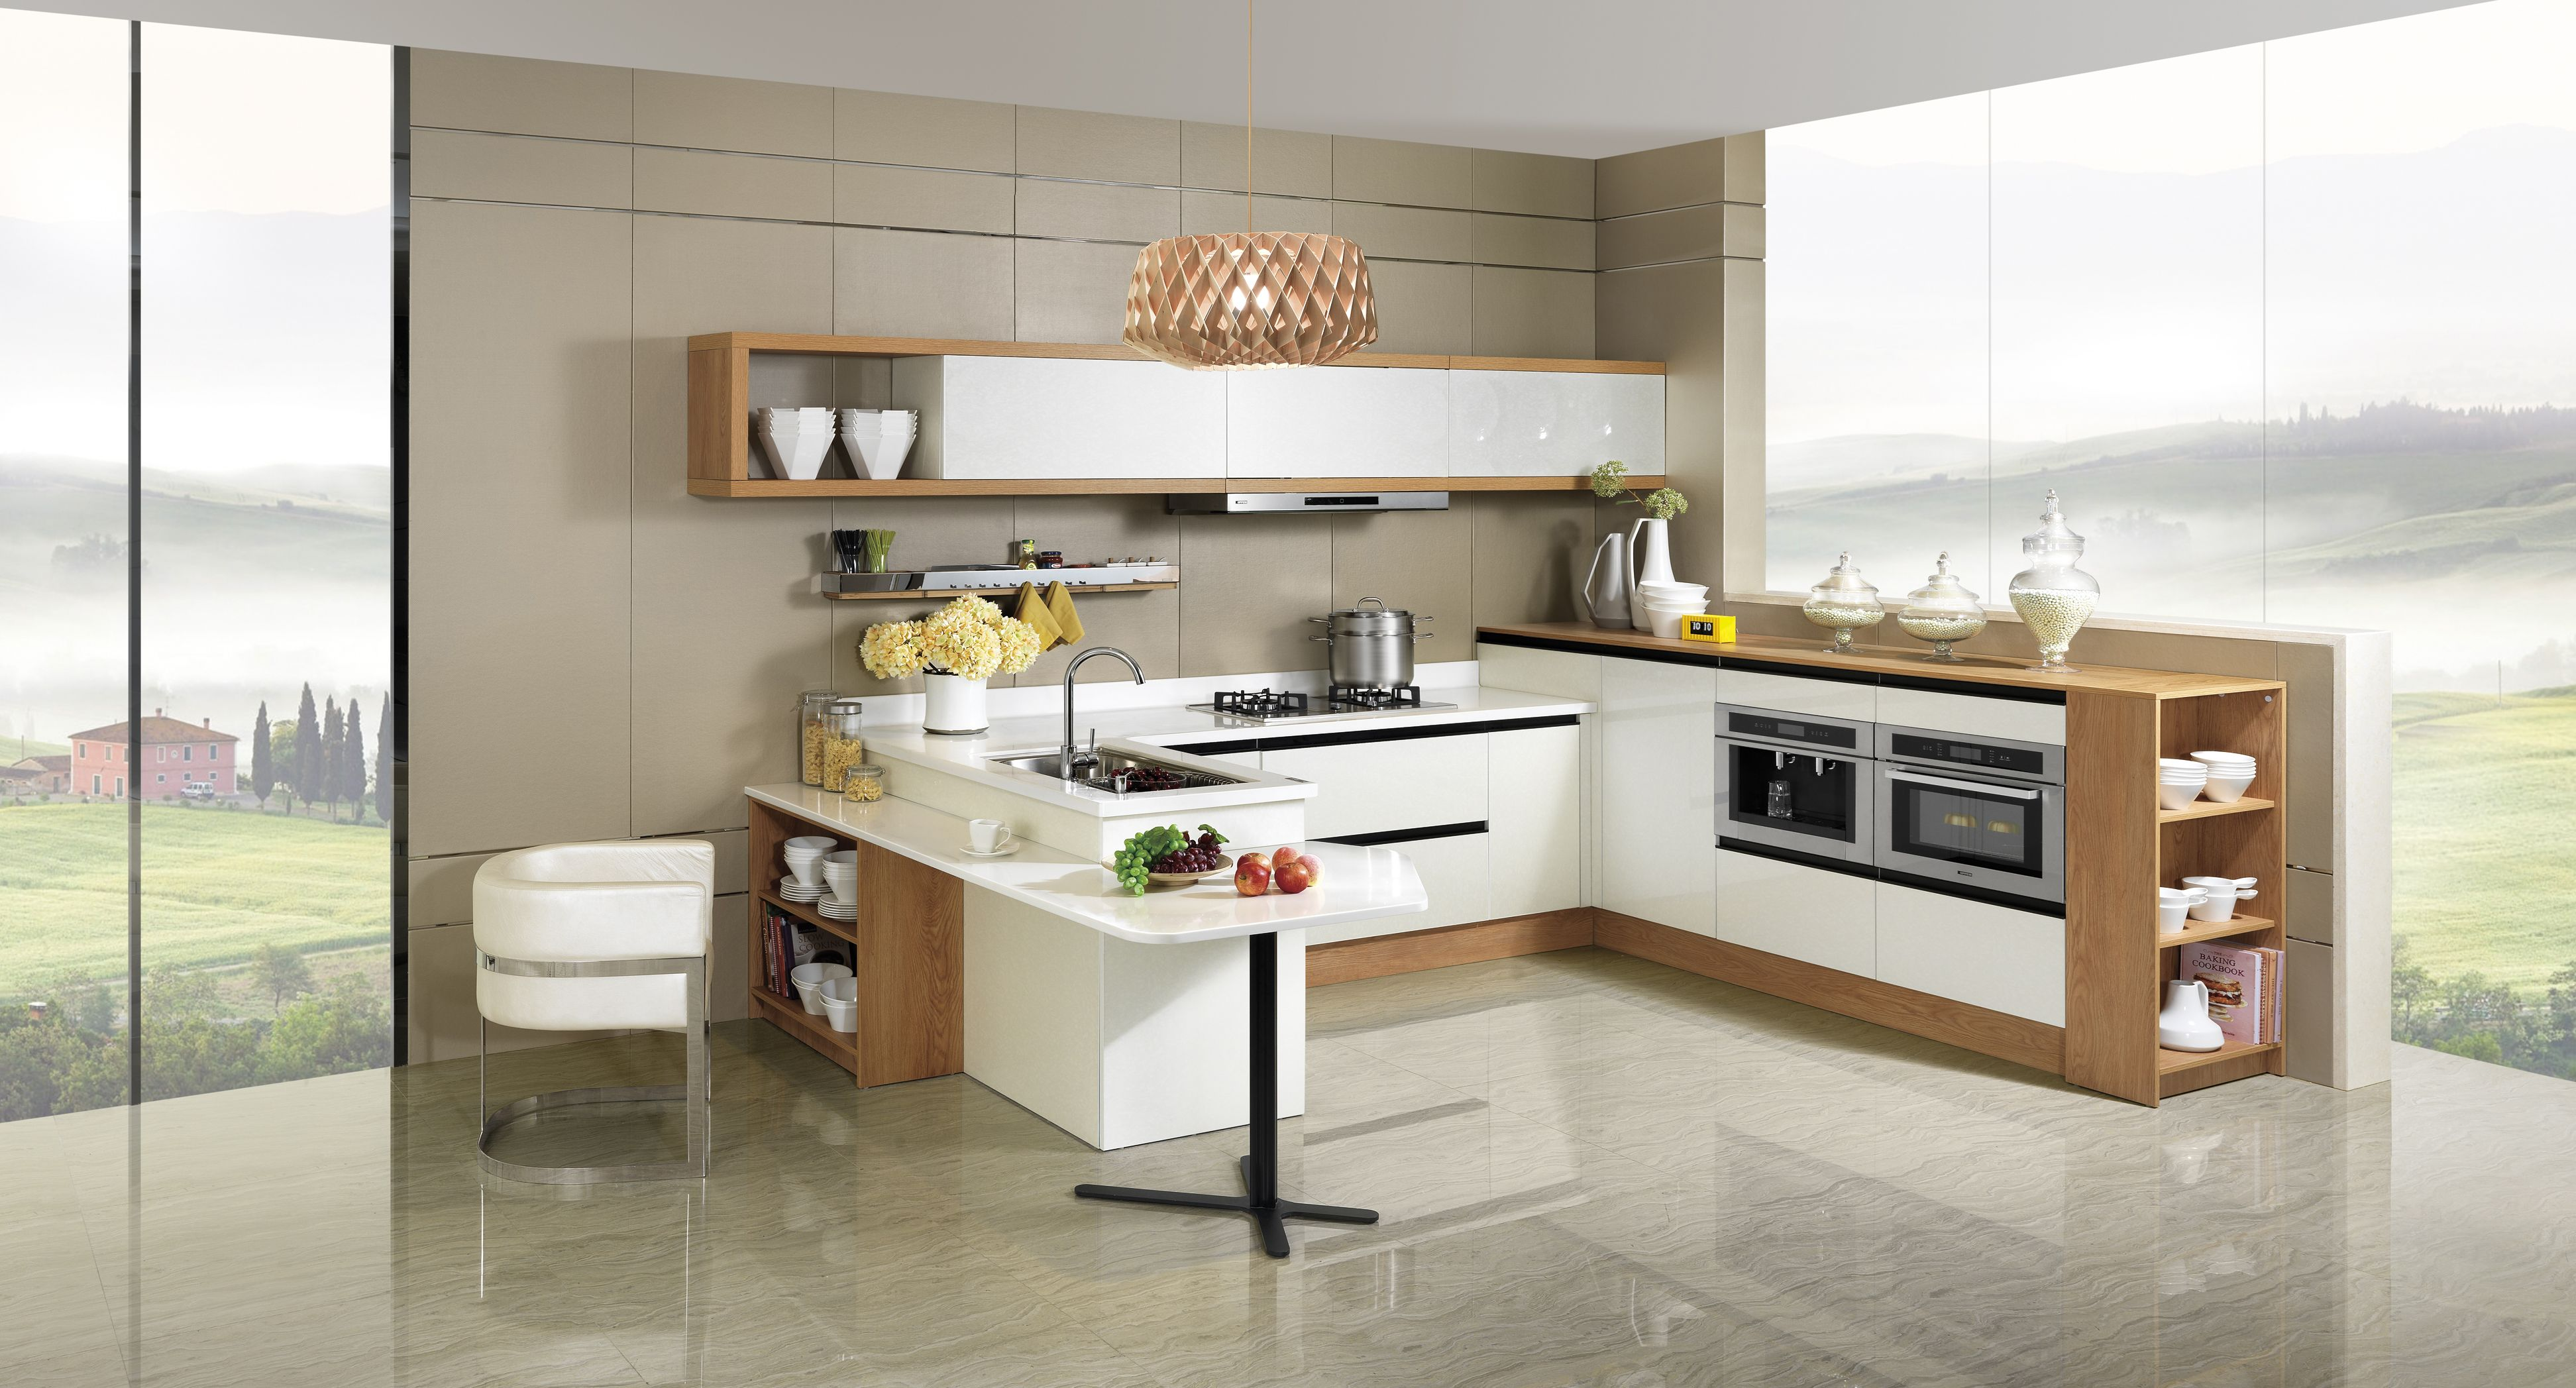 Charmant 2014 New Arrival OPPEIN PVC Laminate Kitchen Cabinet In Guangzhou OP14 054